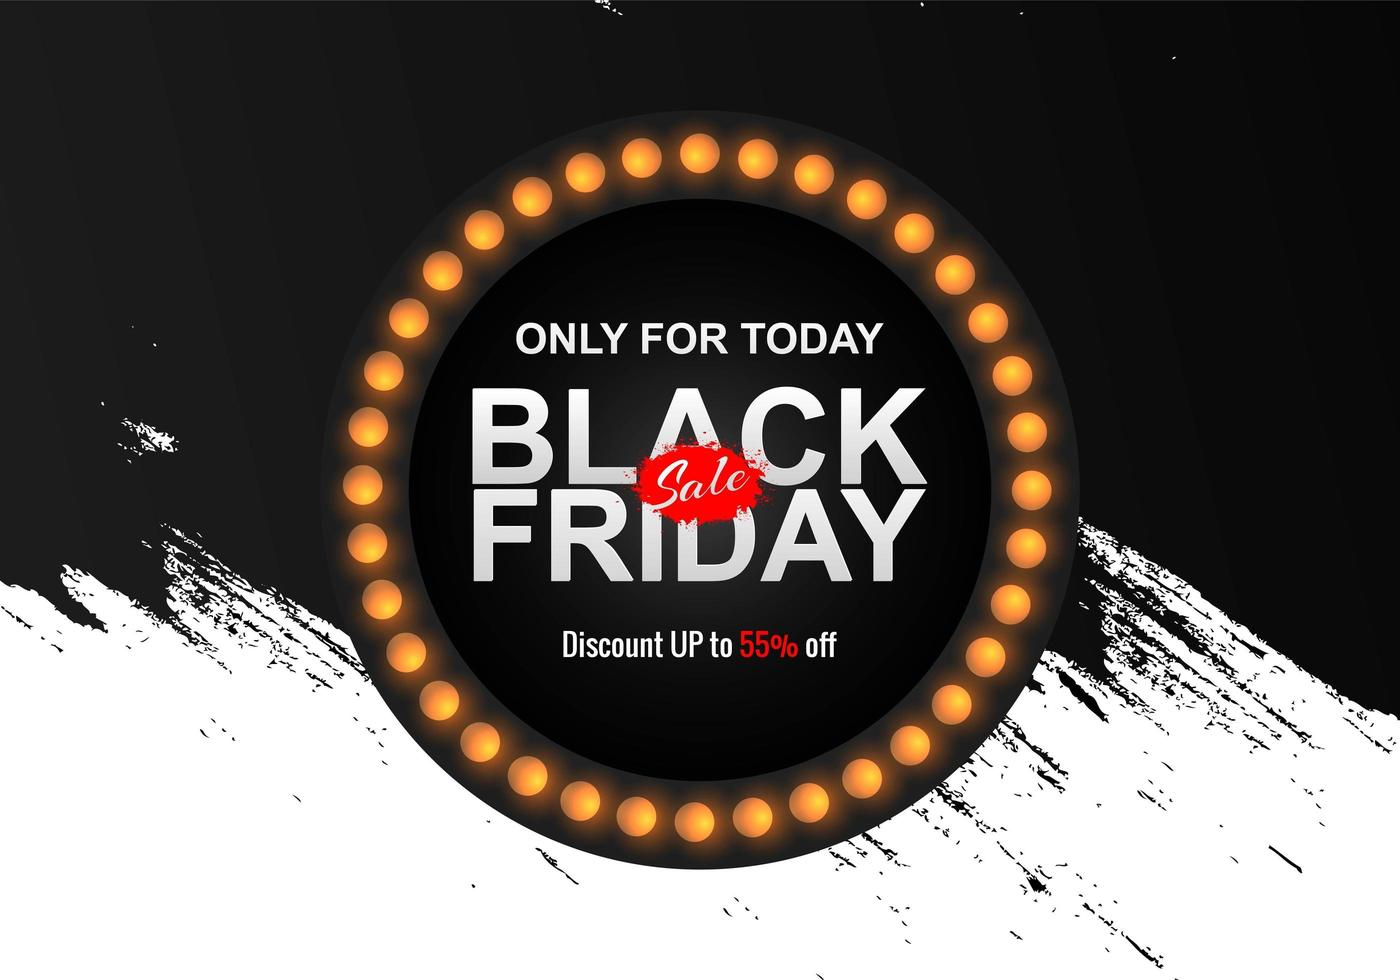 Black Friday Sale with Grunge Brush Background vector